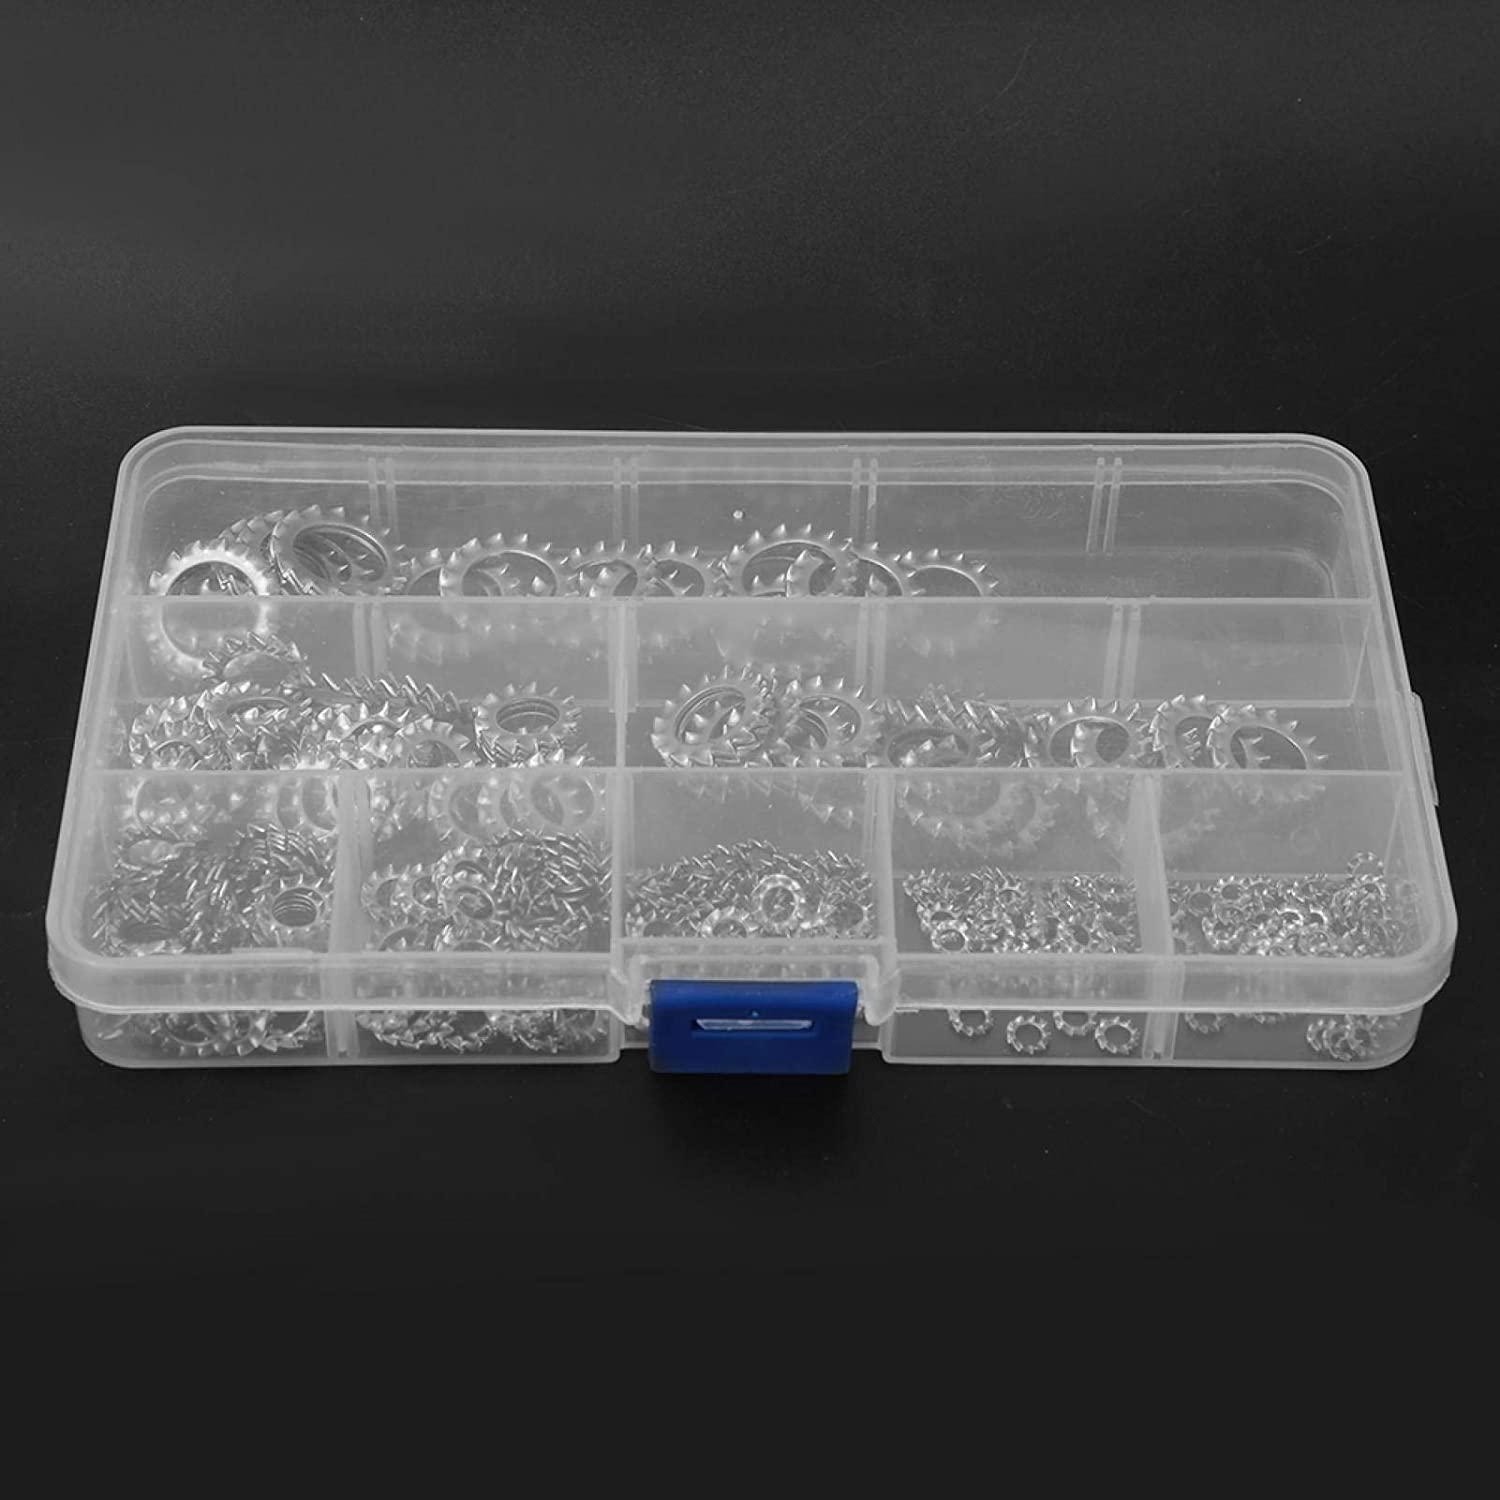 Marine uses for Electrical Connections for Automotive Connection Serrated Washer SALUTUYA 300 Pcs with a Box Anti-Loose Washer